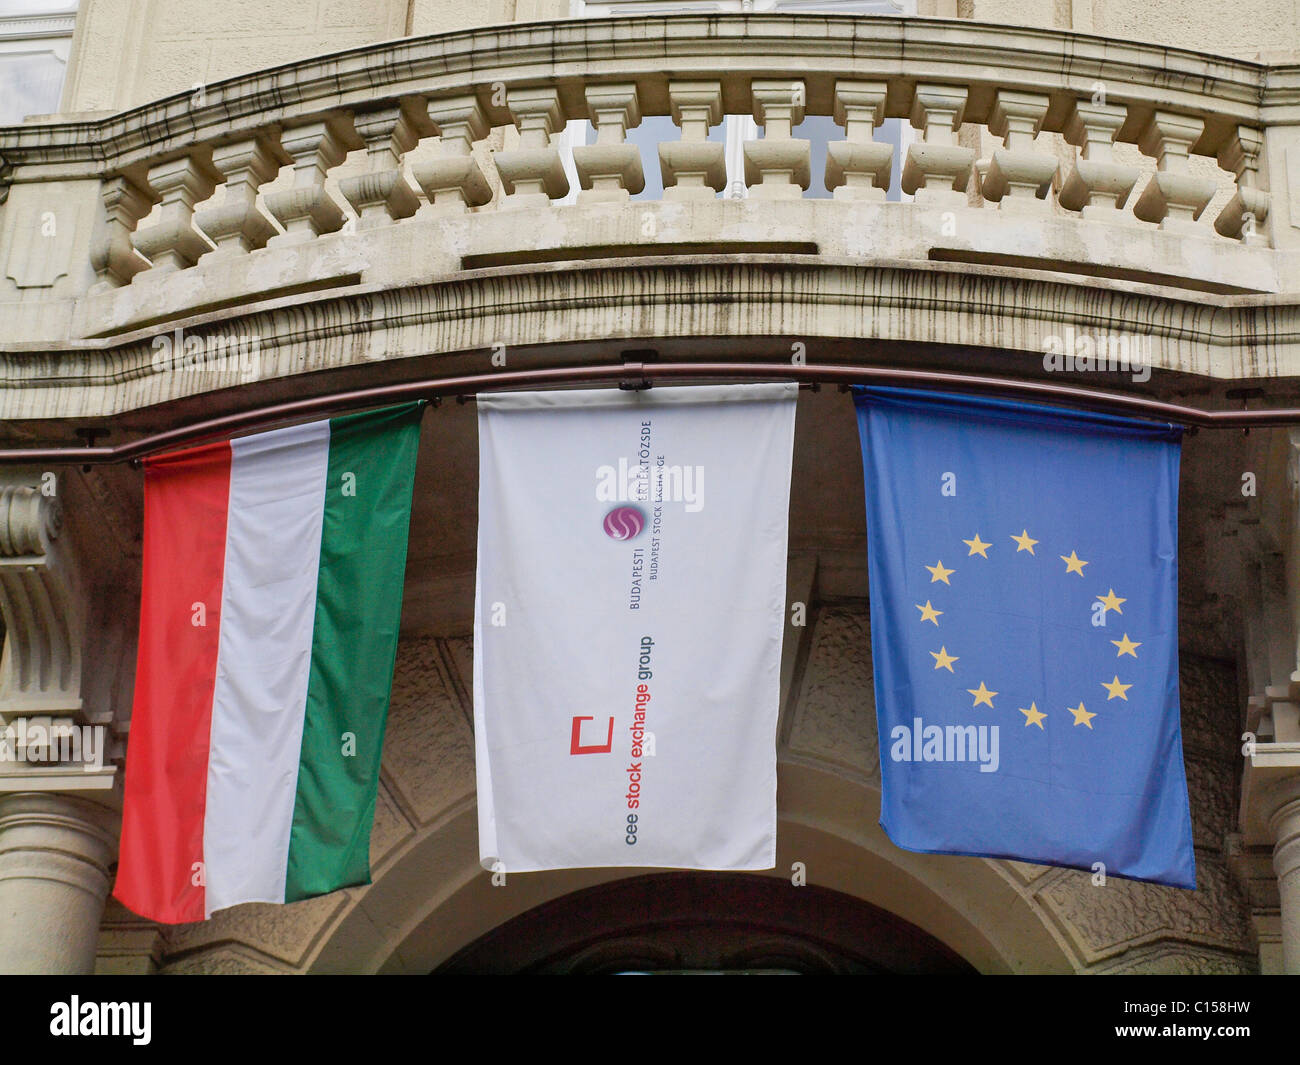 Flags hang over the entrance to the Budapest Stock Exchange. Budapest, Hungary. - Stock Image